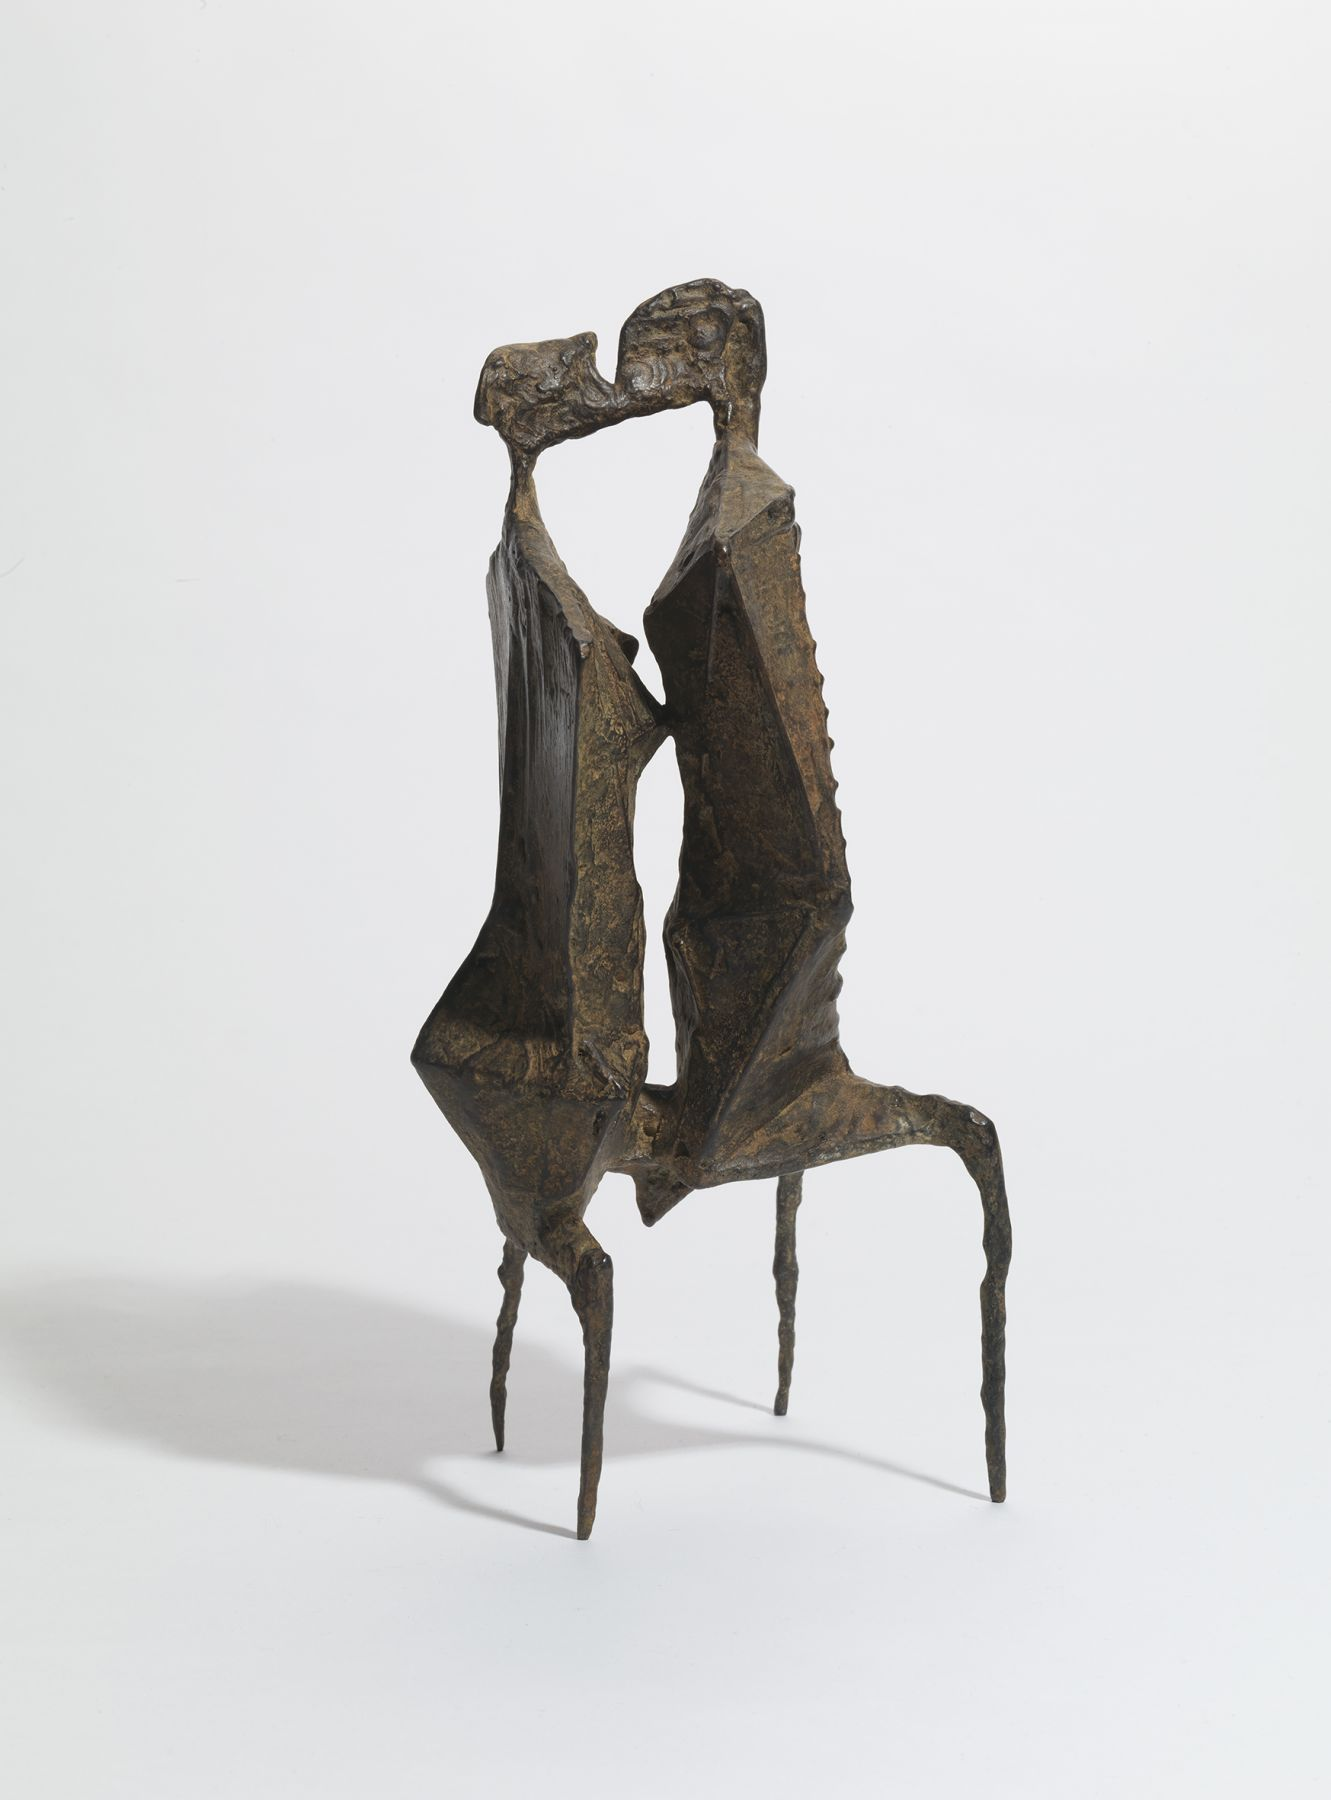 Lynn Chadwick, Two Figures, 1954,  Bronze, 31 by 14 by 15 cm (12 ¼ by 5 ½ by 5 ⅞ in.)